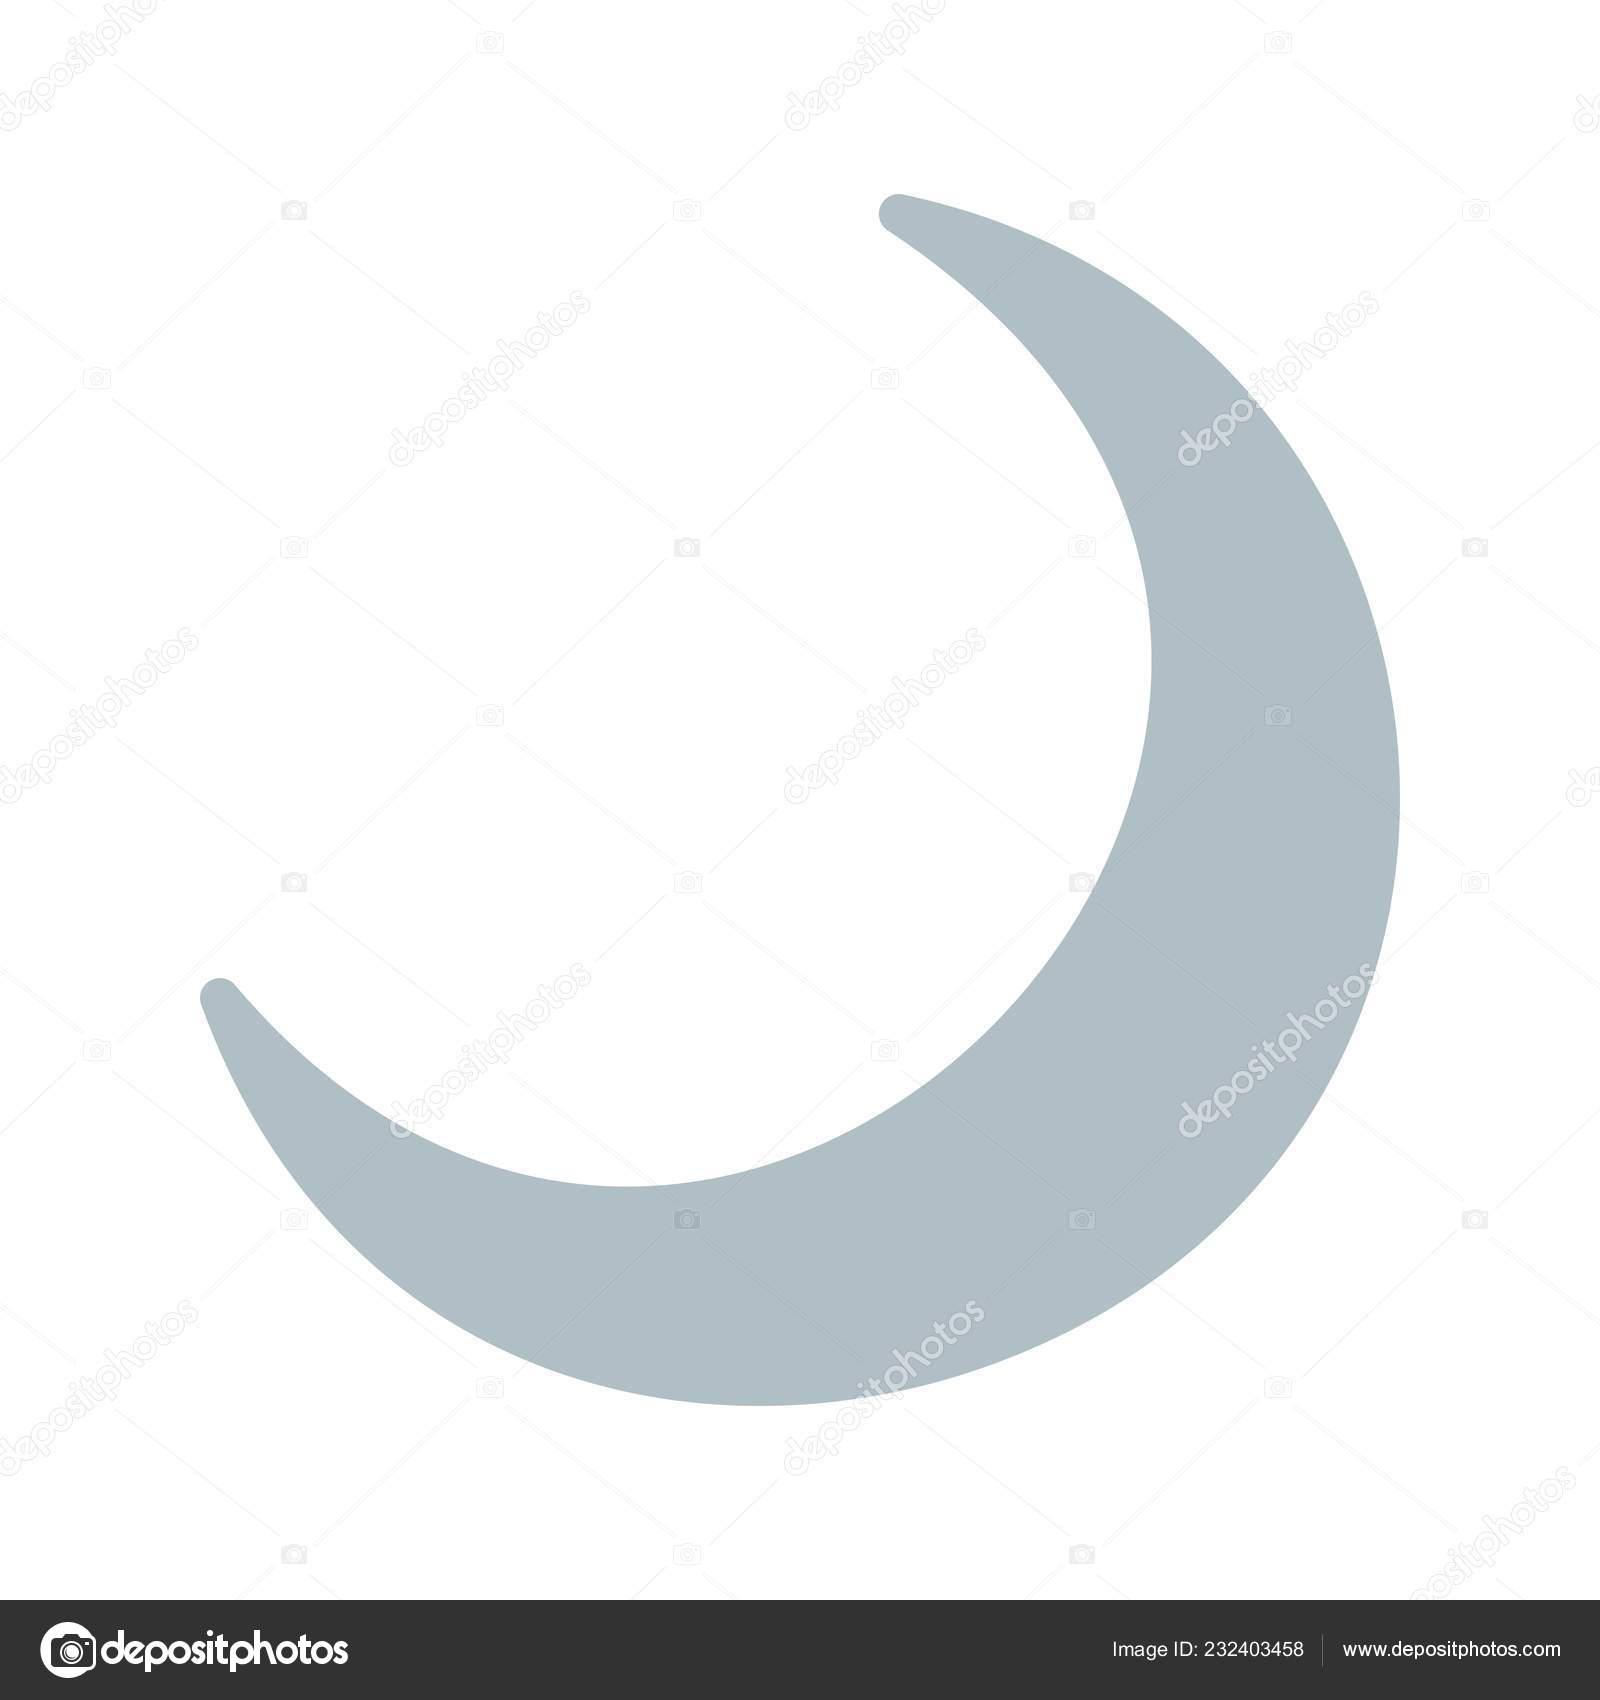 crescent moon vector icon sign icon vector illustration personal commercial stock vector c iyikon 232403458 depositphotos